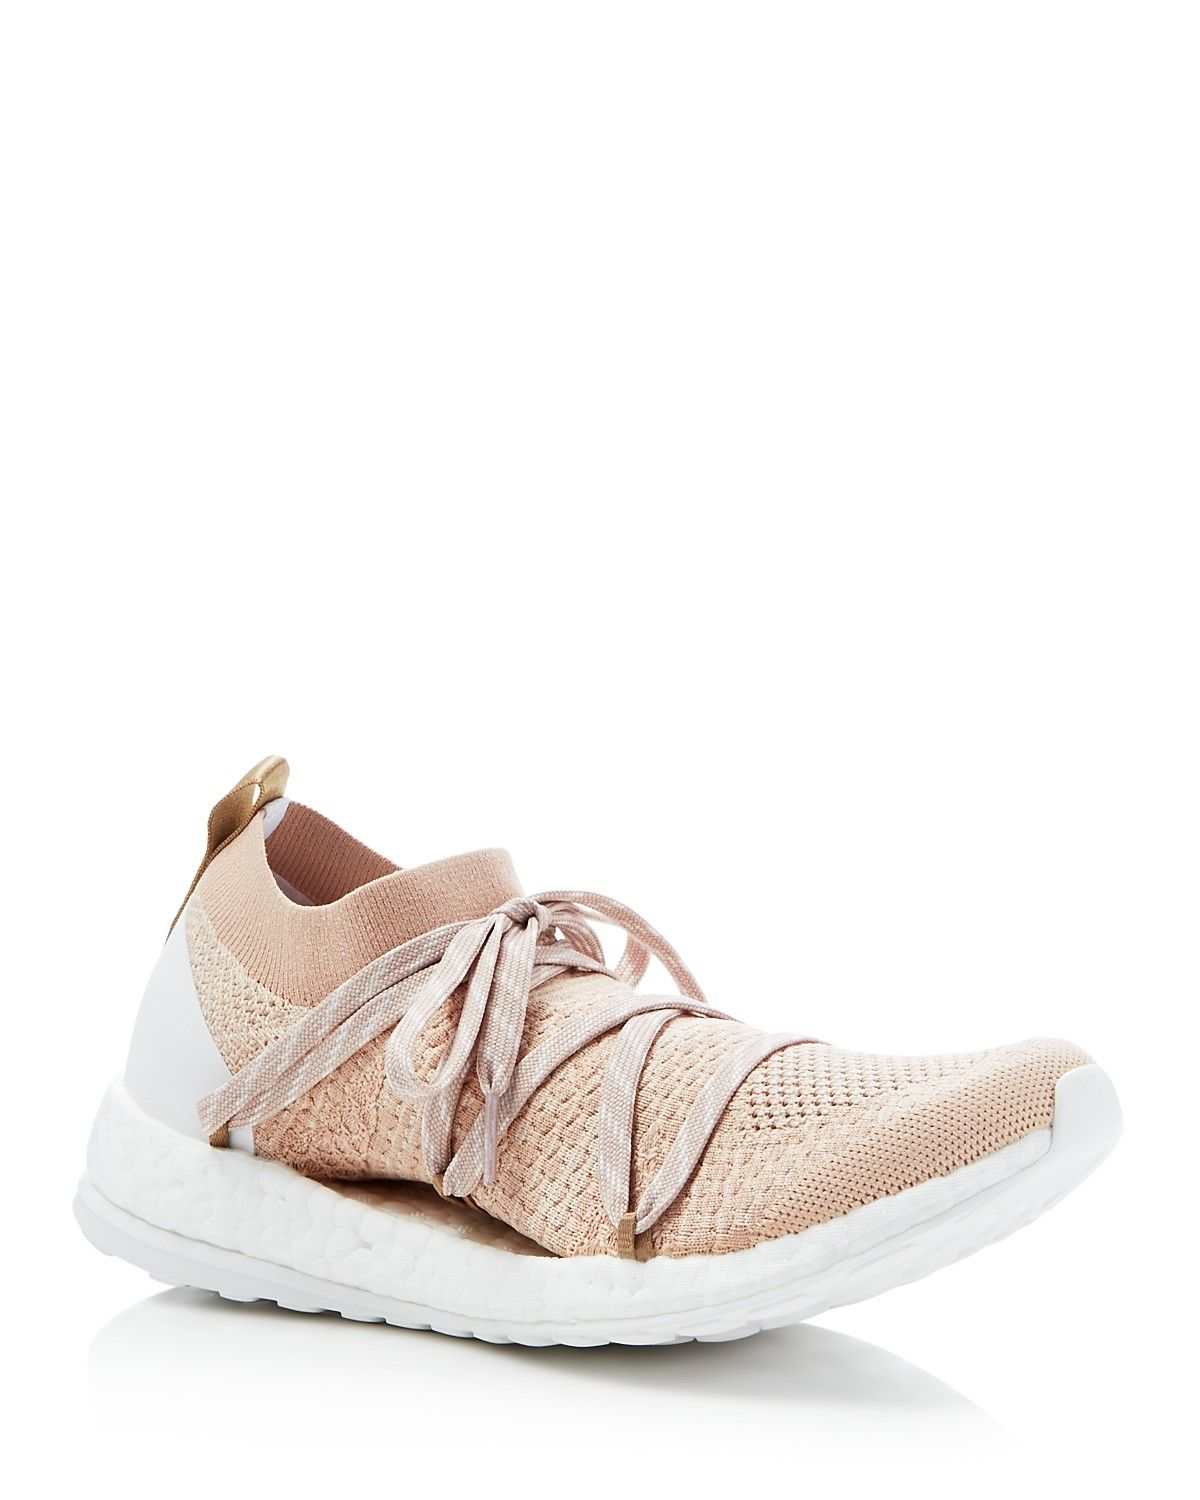 e461f3580efe adidas by Stella McCartney Pure Boost X Lace Up Sneakers